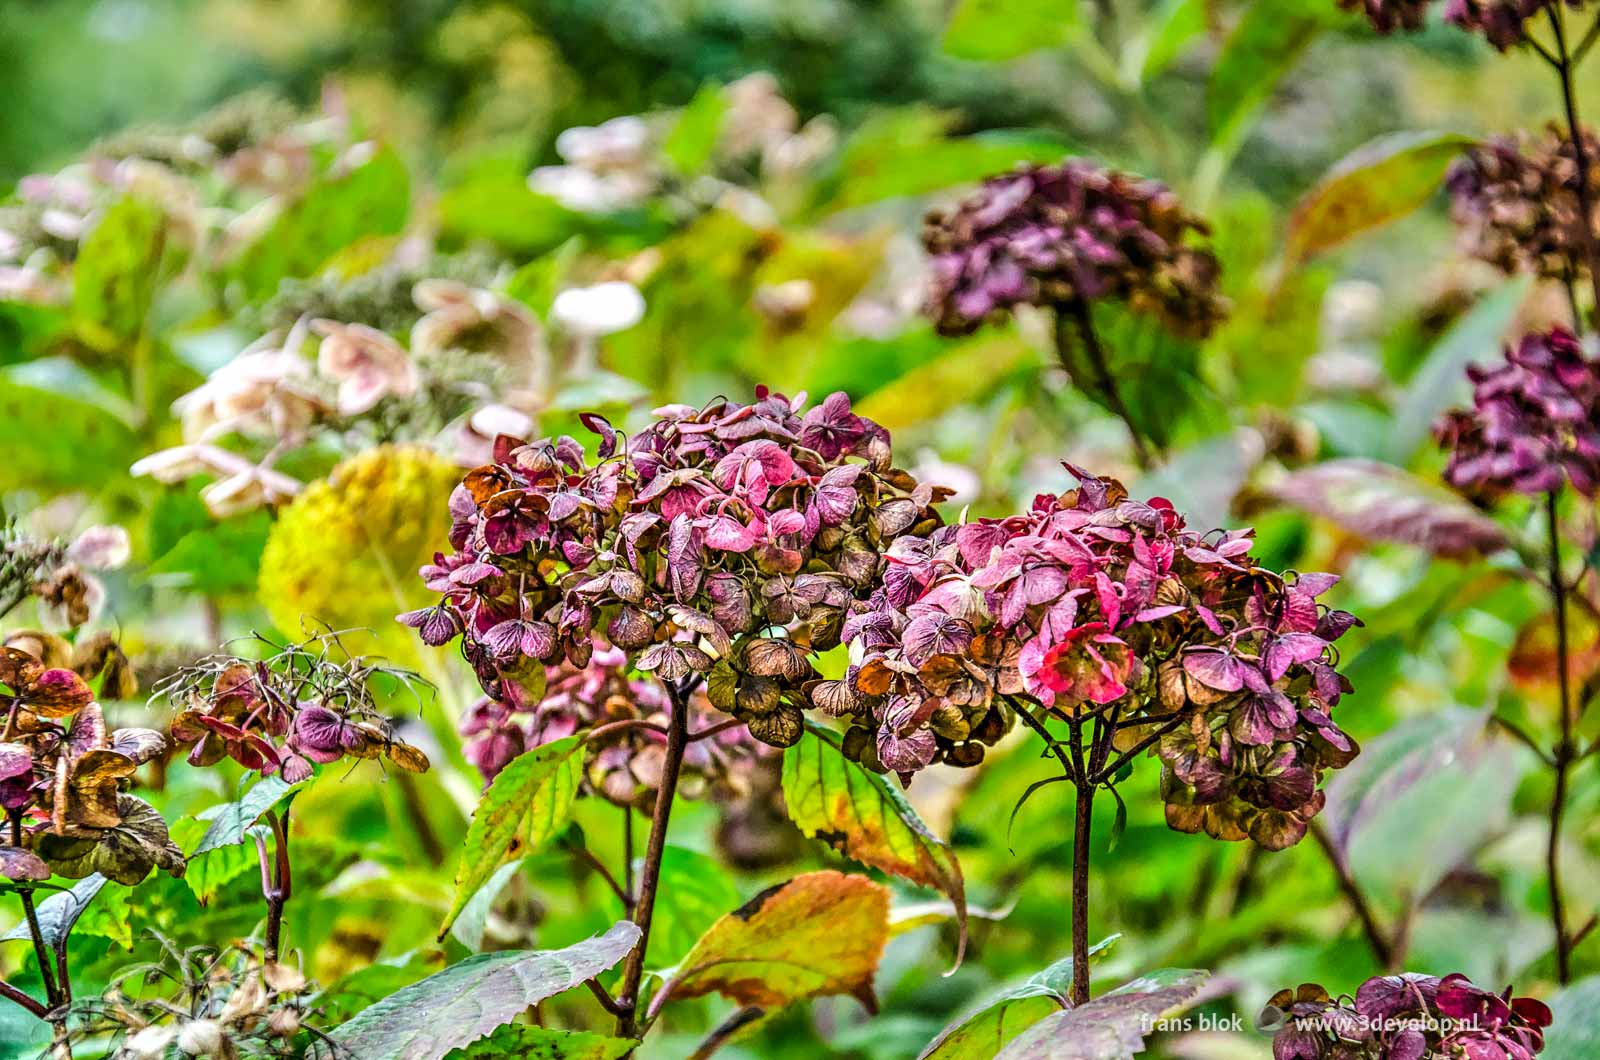 Hortensias in autumn in The Park in Rotterdam